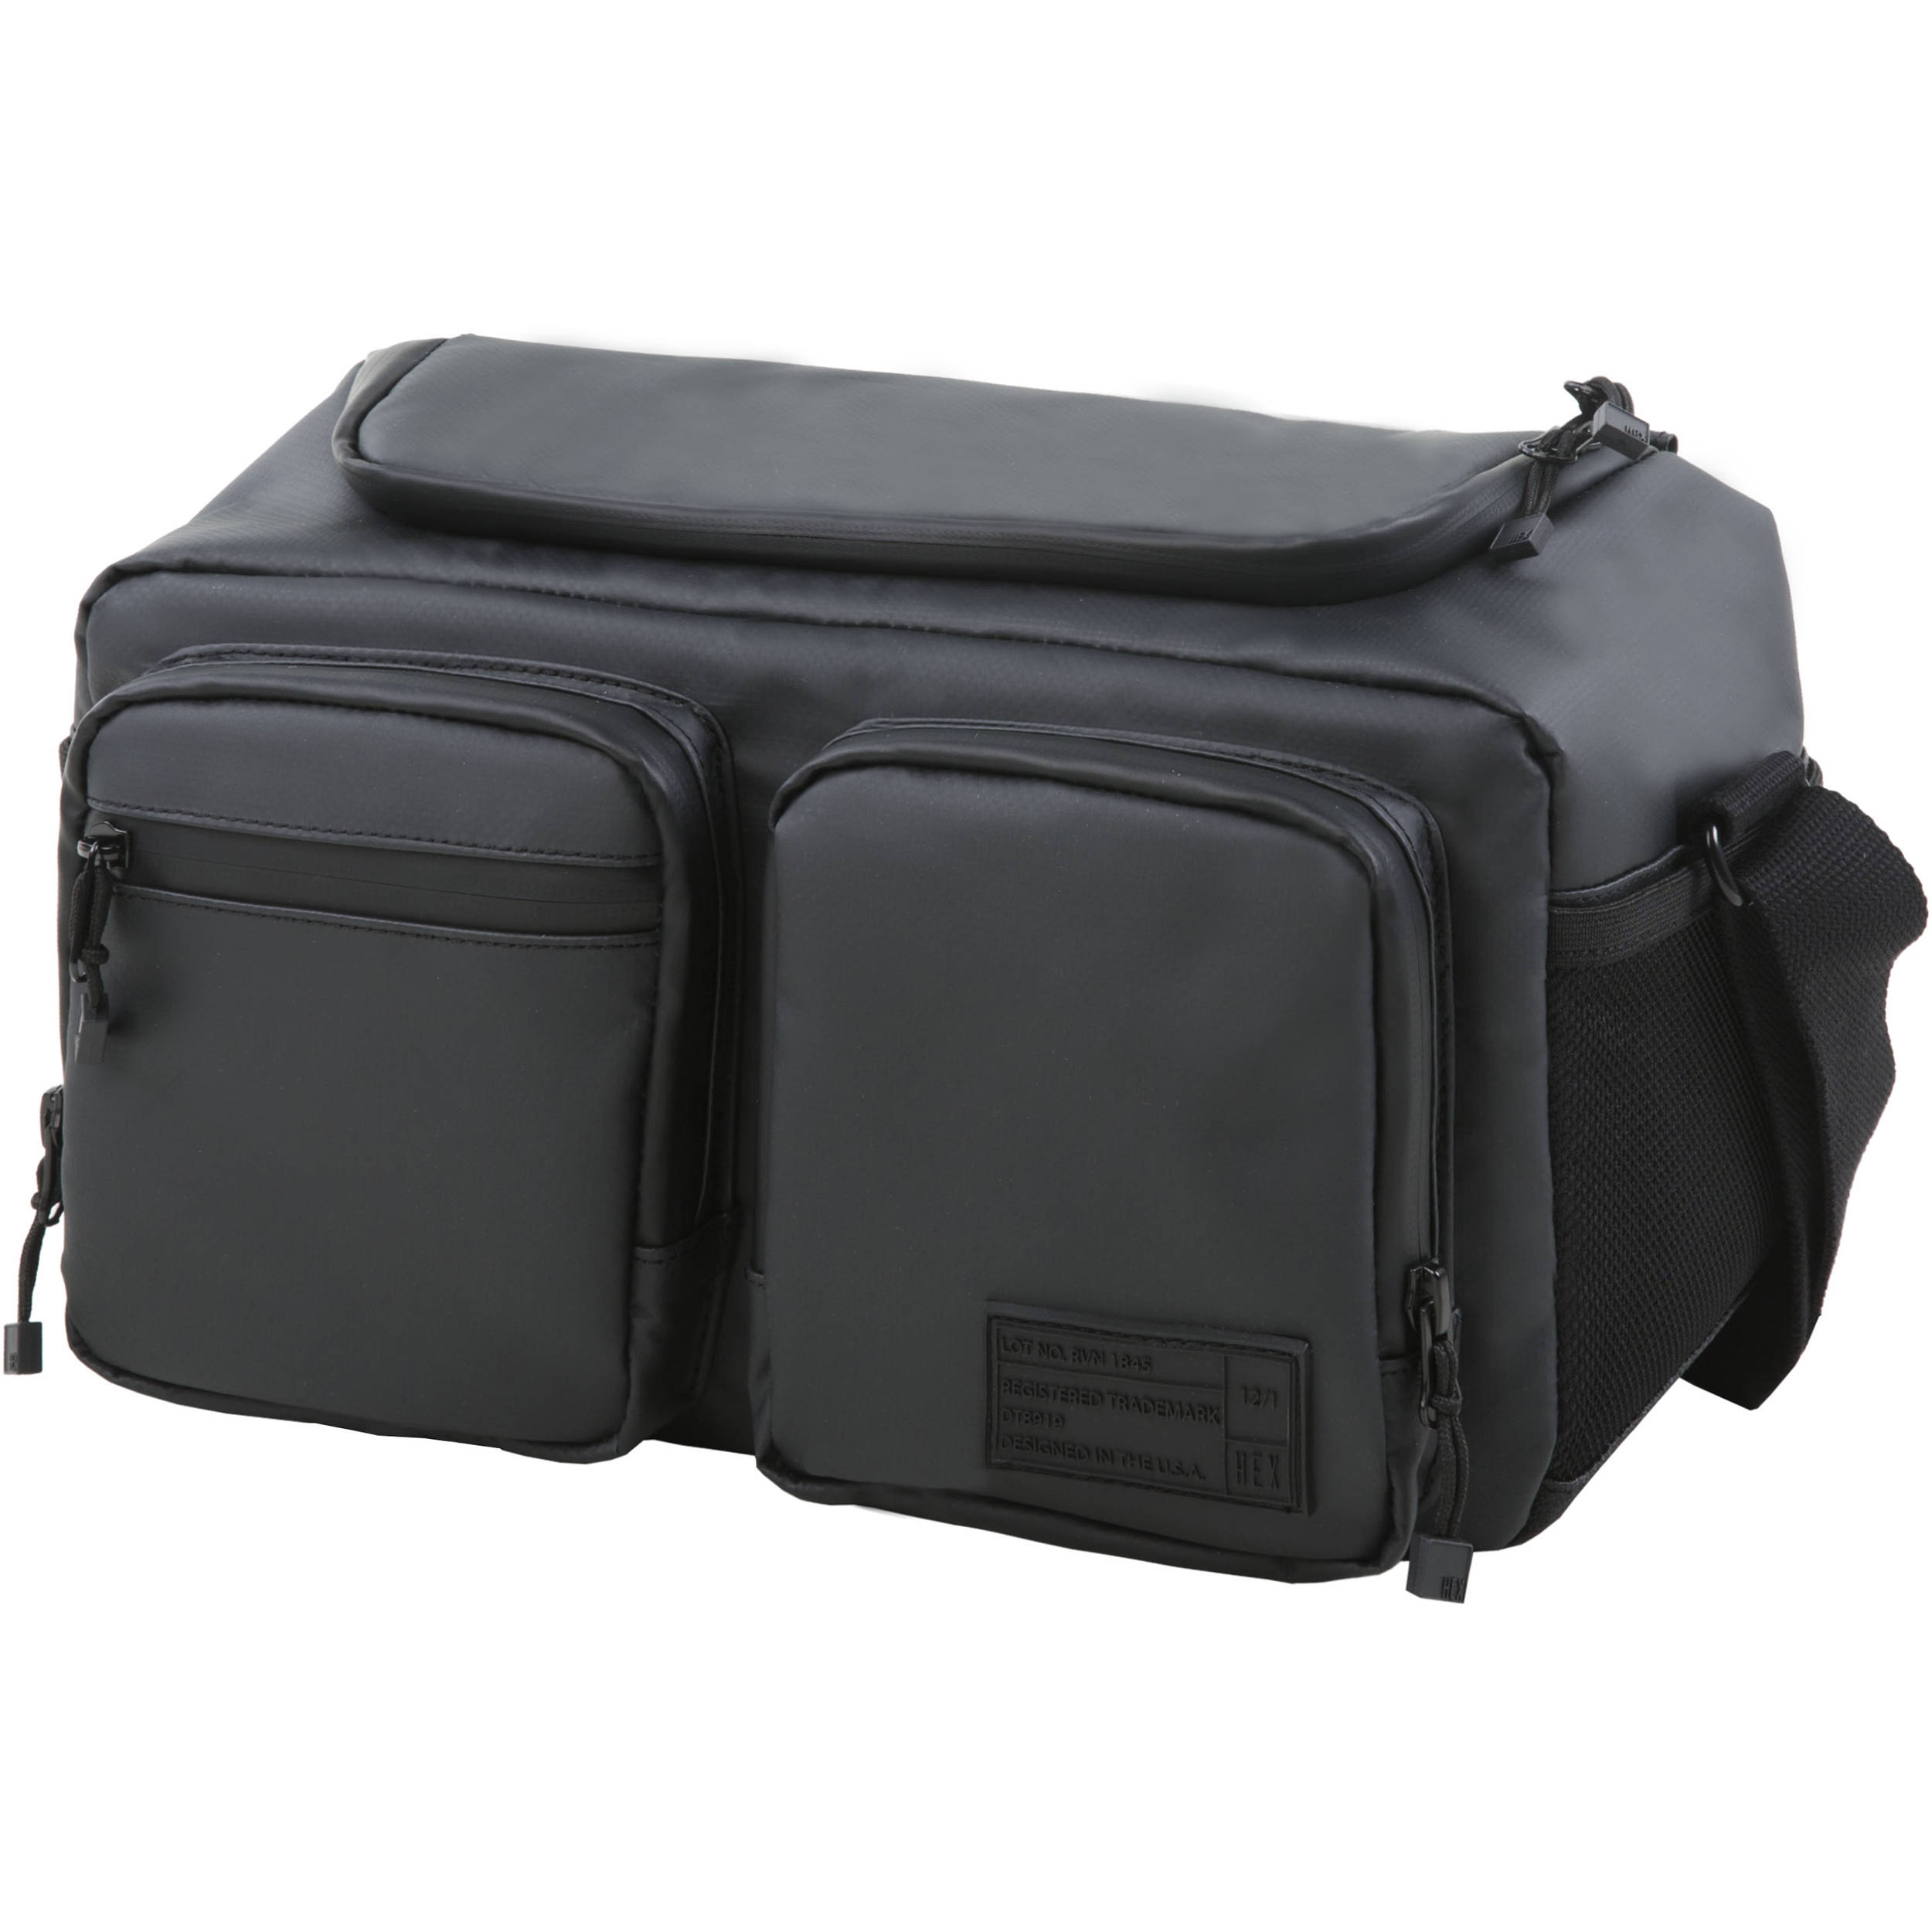 Hex Raven Mirrorless Bag Black